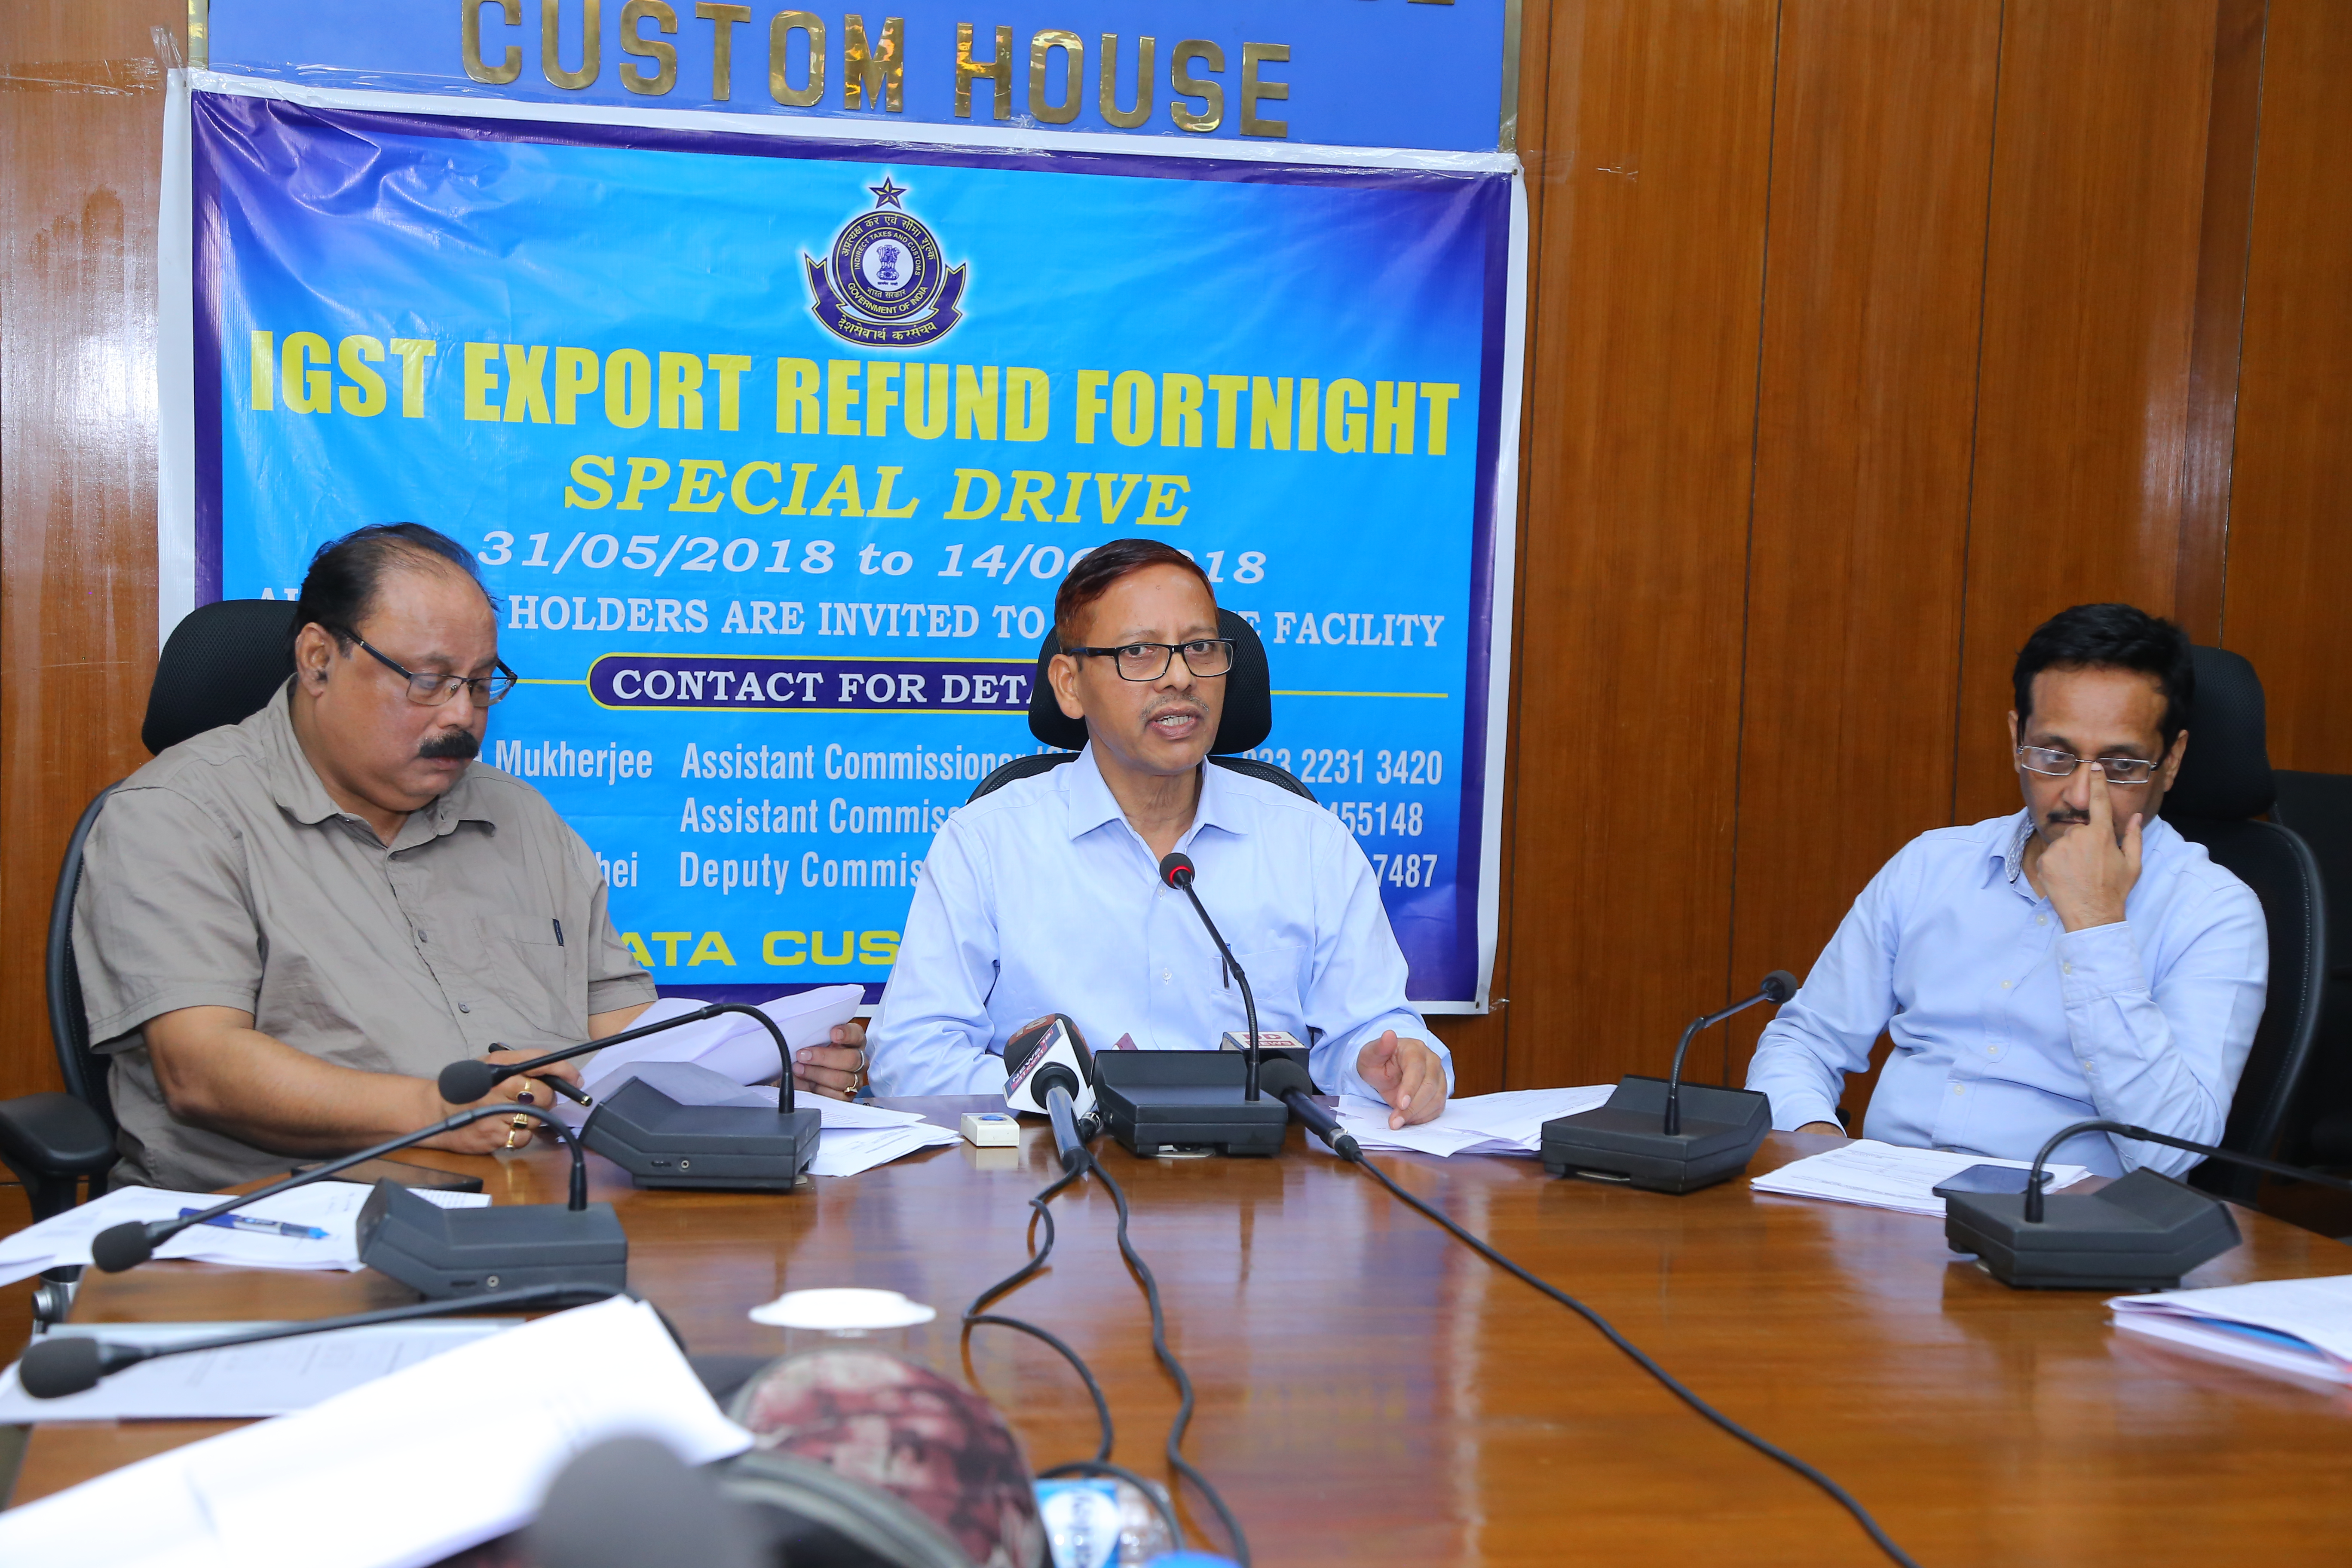 Extension to avail facility of IGST refund special drive from 14/06/2018 to 16/06/2018 - meeting with stakeholders and press conference chaired by CC, Kolkata Zone